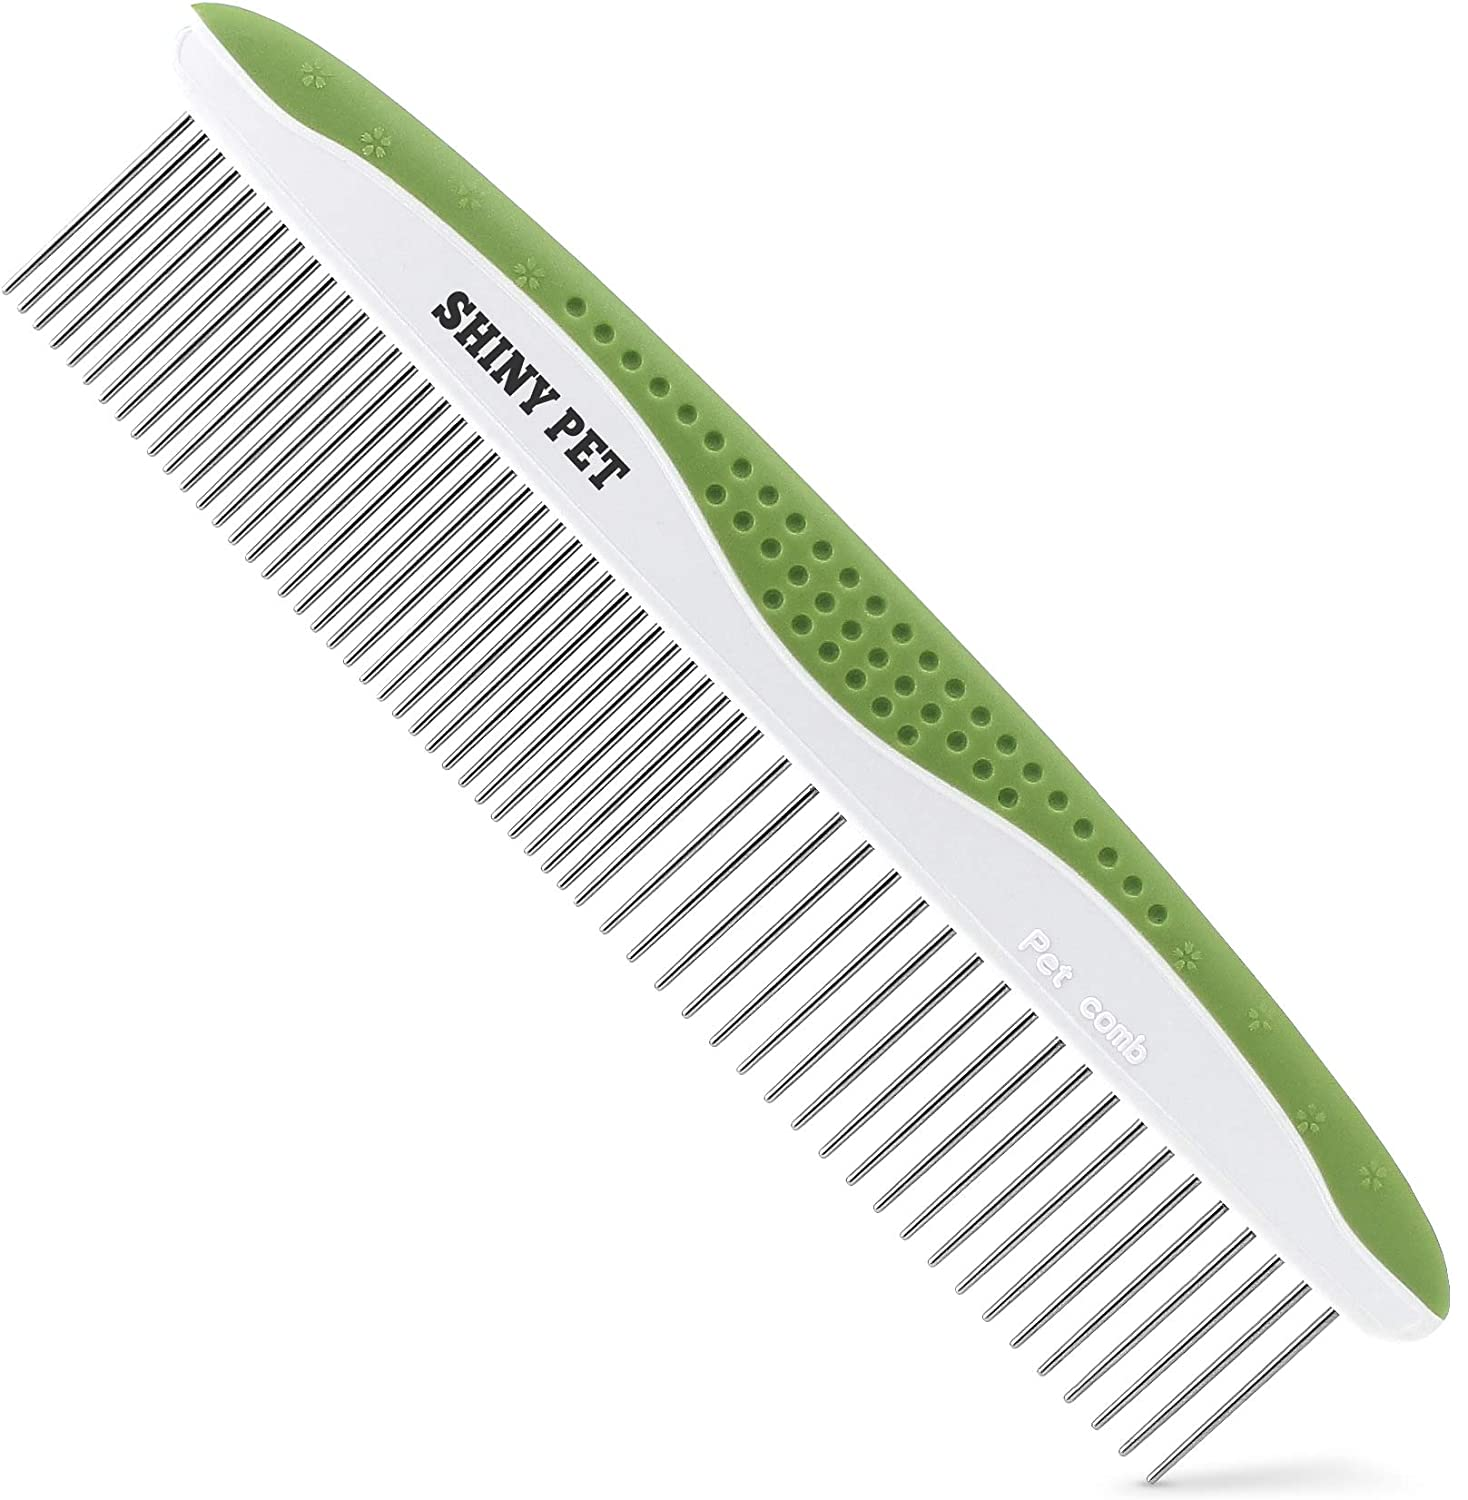 Shiny Pet Dog Comb for Removing Tangles and Knots